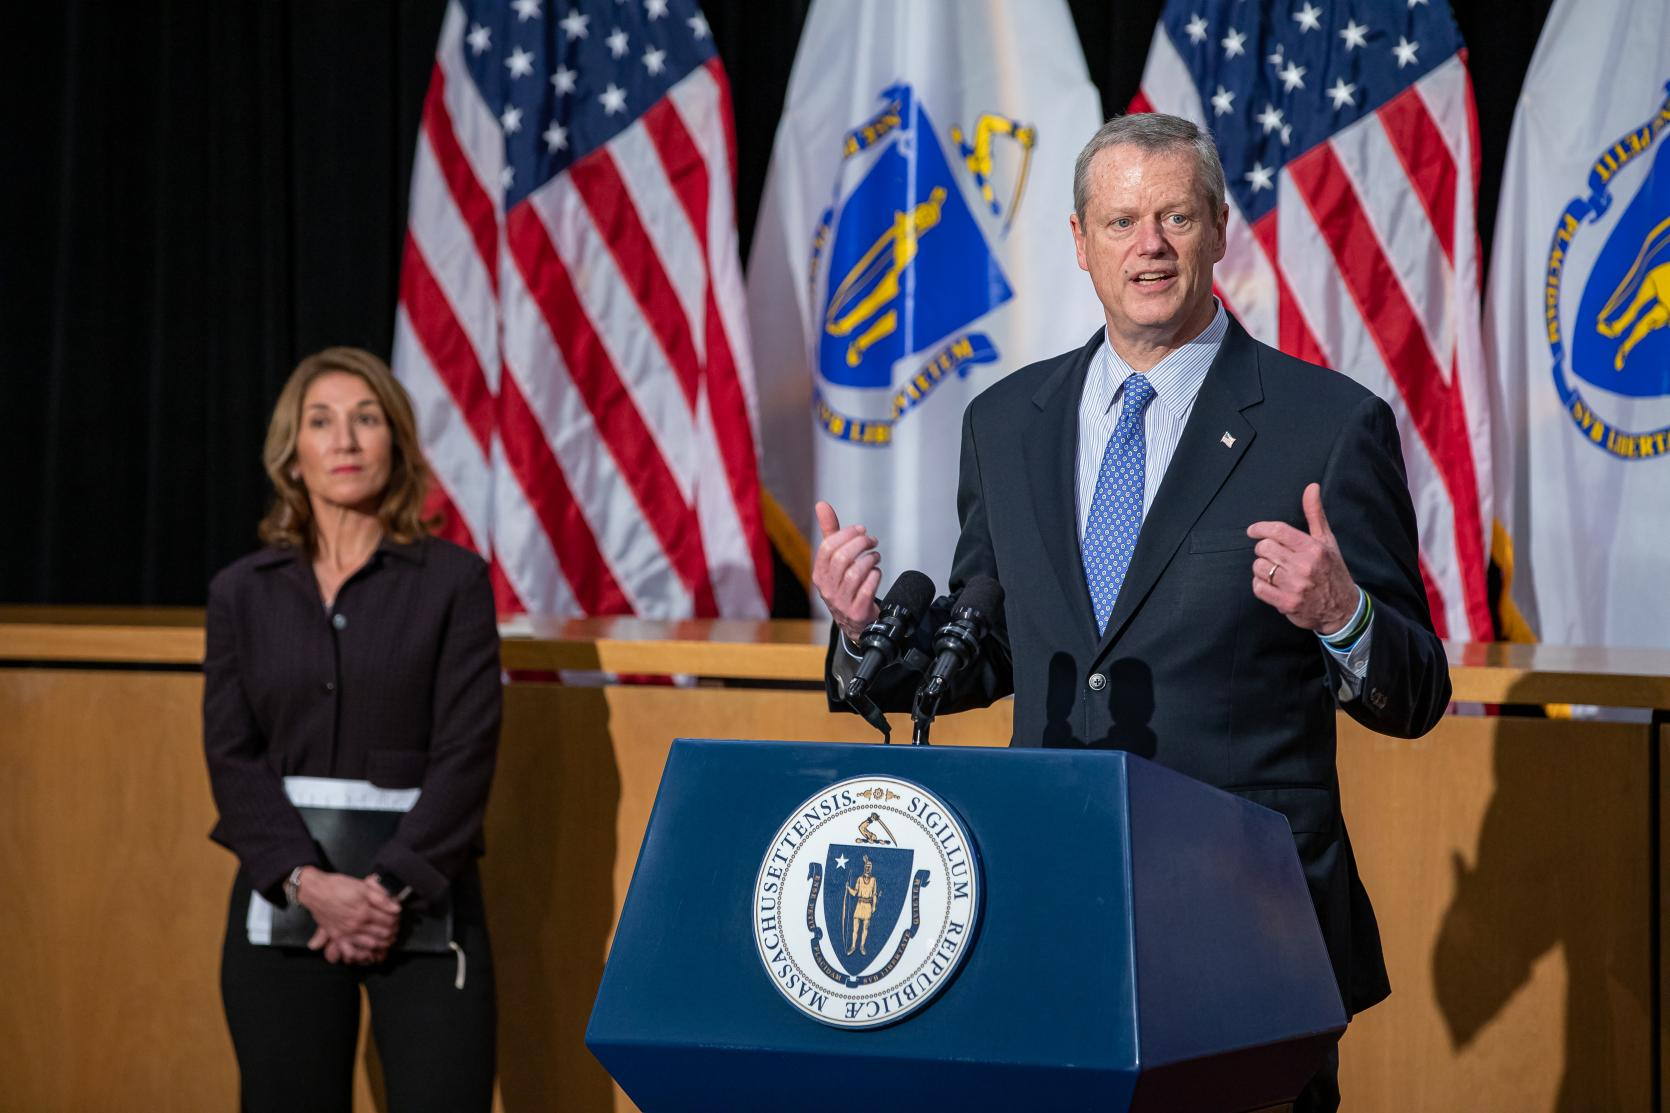 Baker-Polito Administration Provides Update on Phase II of Re-opening Plan, Releases Guidance for Restaurants and Lodging